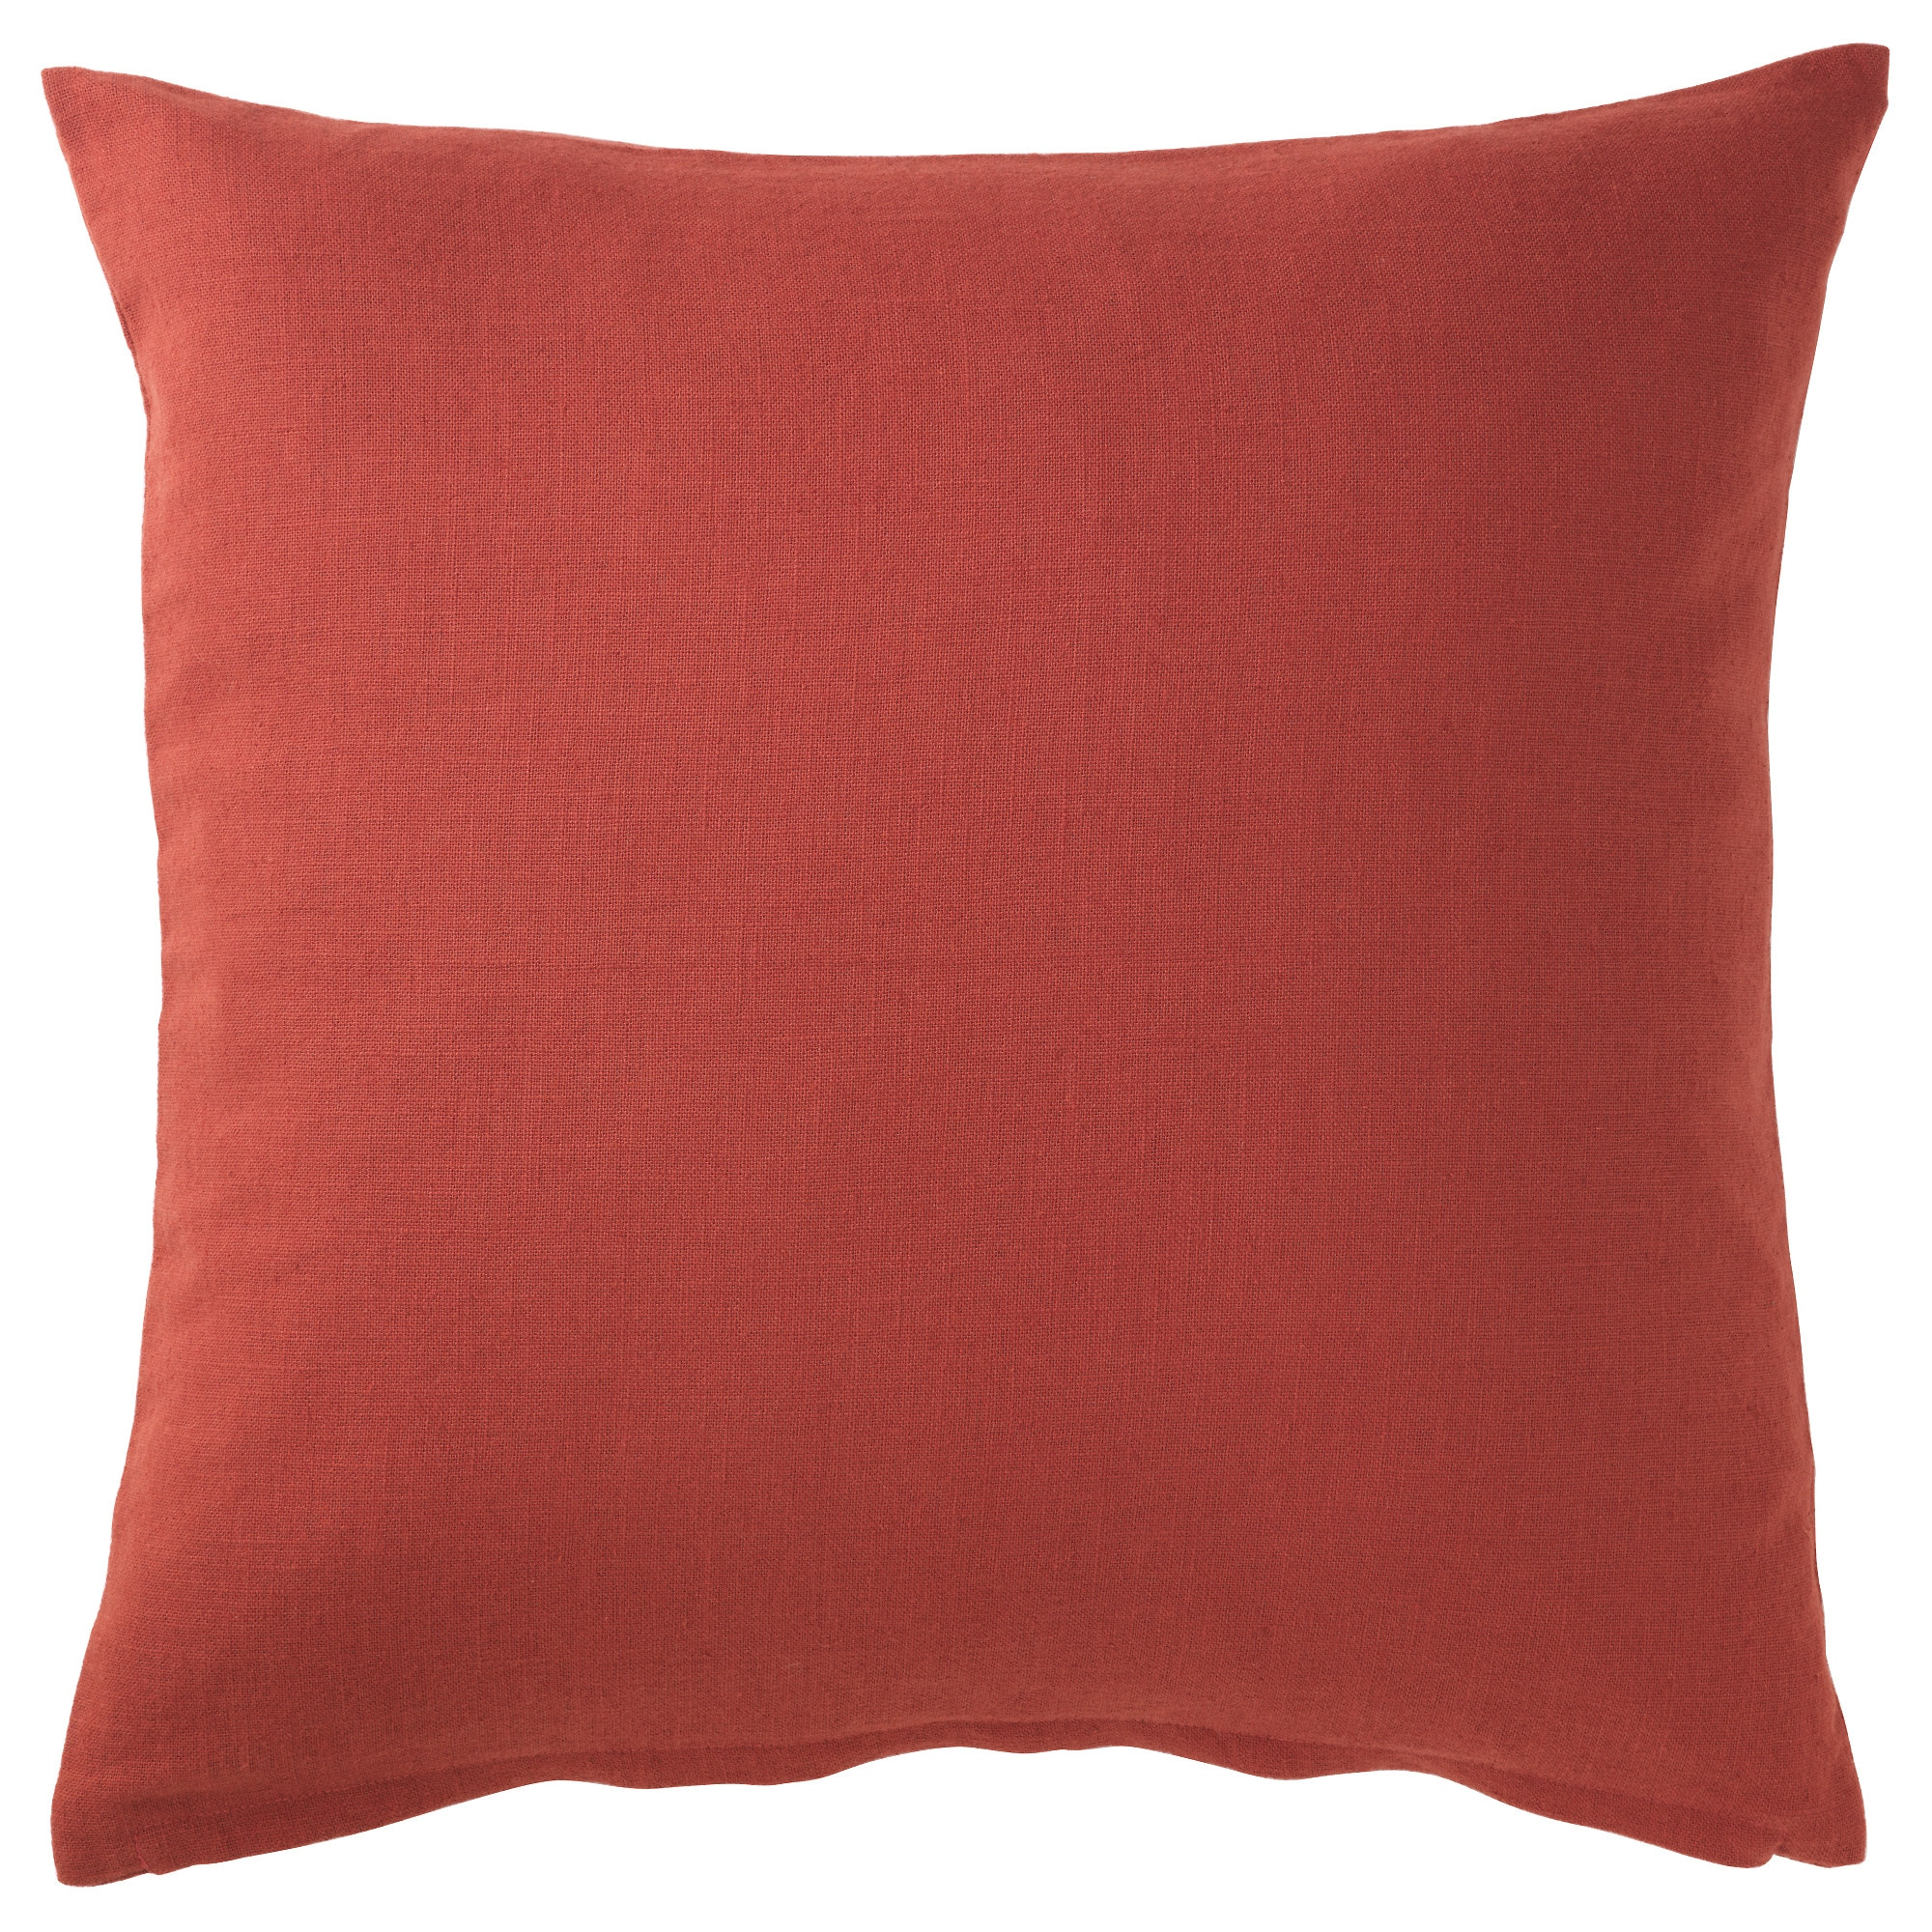 products accessory your knit throw pillow melon love red